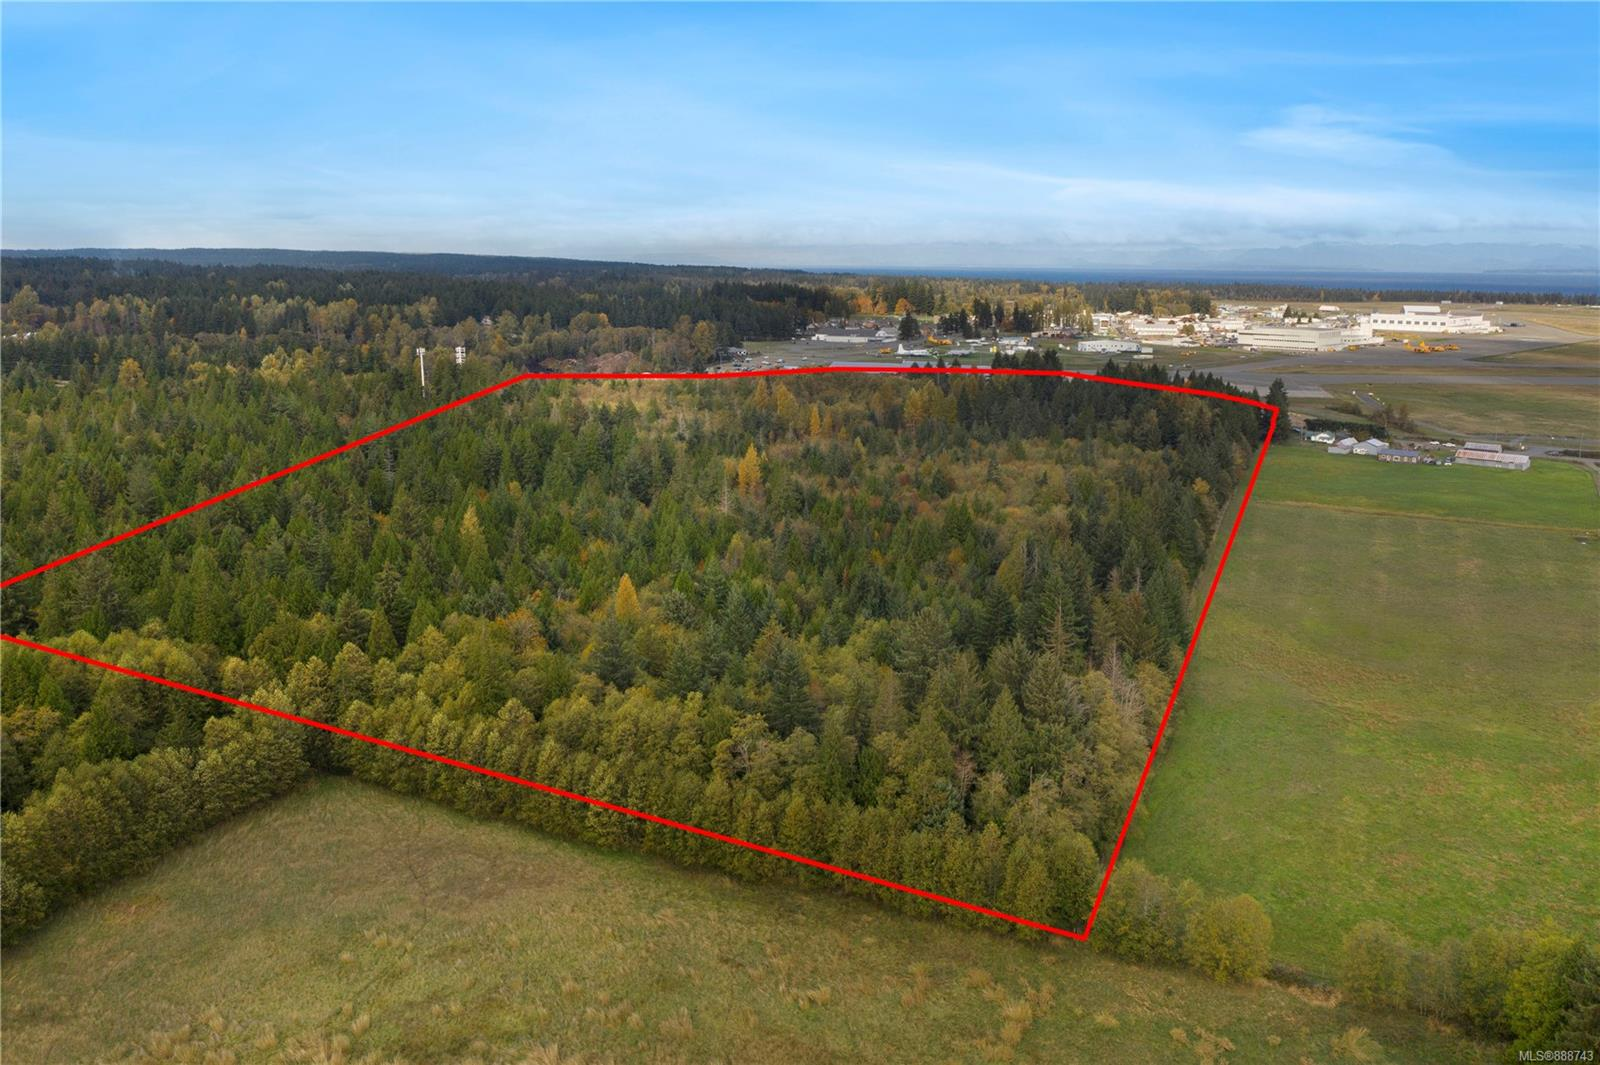 Spectacular 53.73 acre parcel of undeveloped land directly across from the Comox Valley Airport offers an incredible location & opportunity.  This level, south facing property sits in an area renowned for its good water and fertile land, resulting in one of the longest growing seasons on Vancouver Island.  It is situated adjacent to farmland on the south & east sides, to the west is the Town of Comox boundary. There is a substantial amount of merchantable timber currently on the property. Zoned RU-ALR.